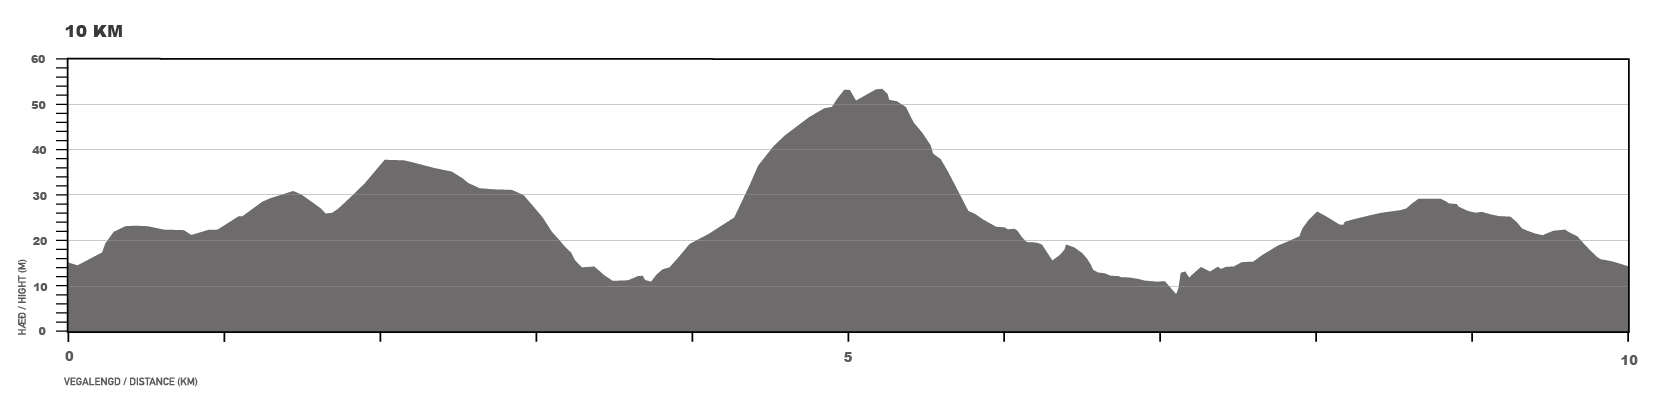 Elevation map for the 10 km race.